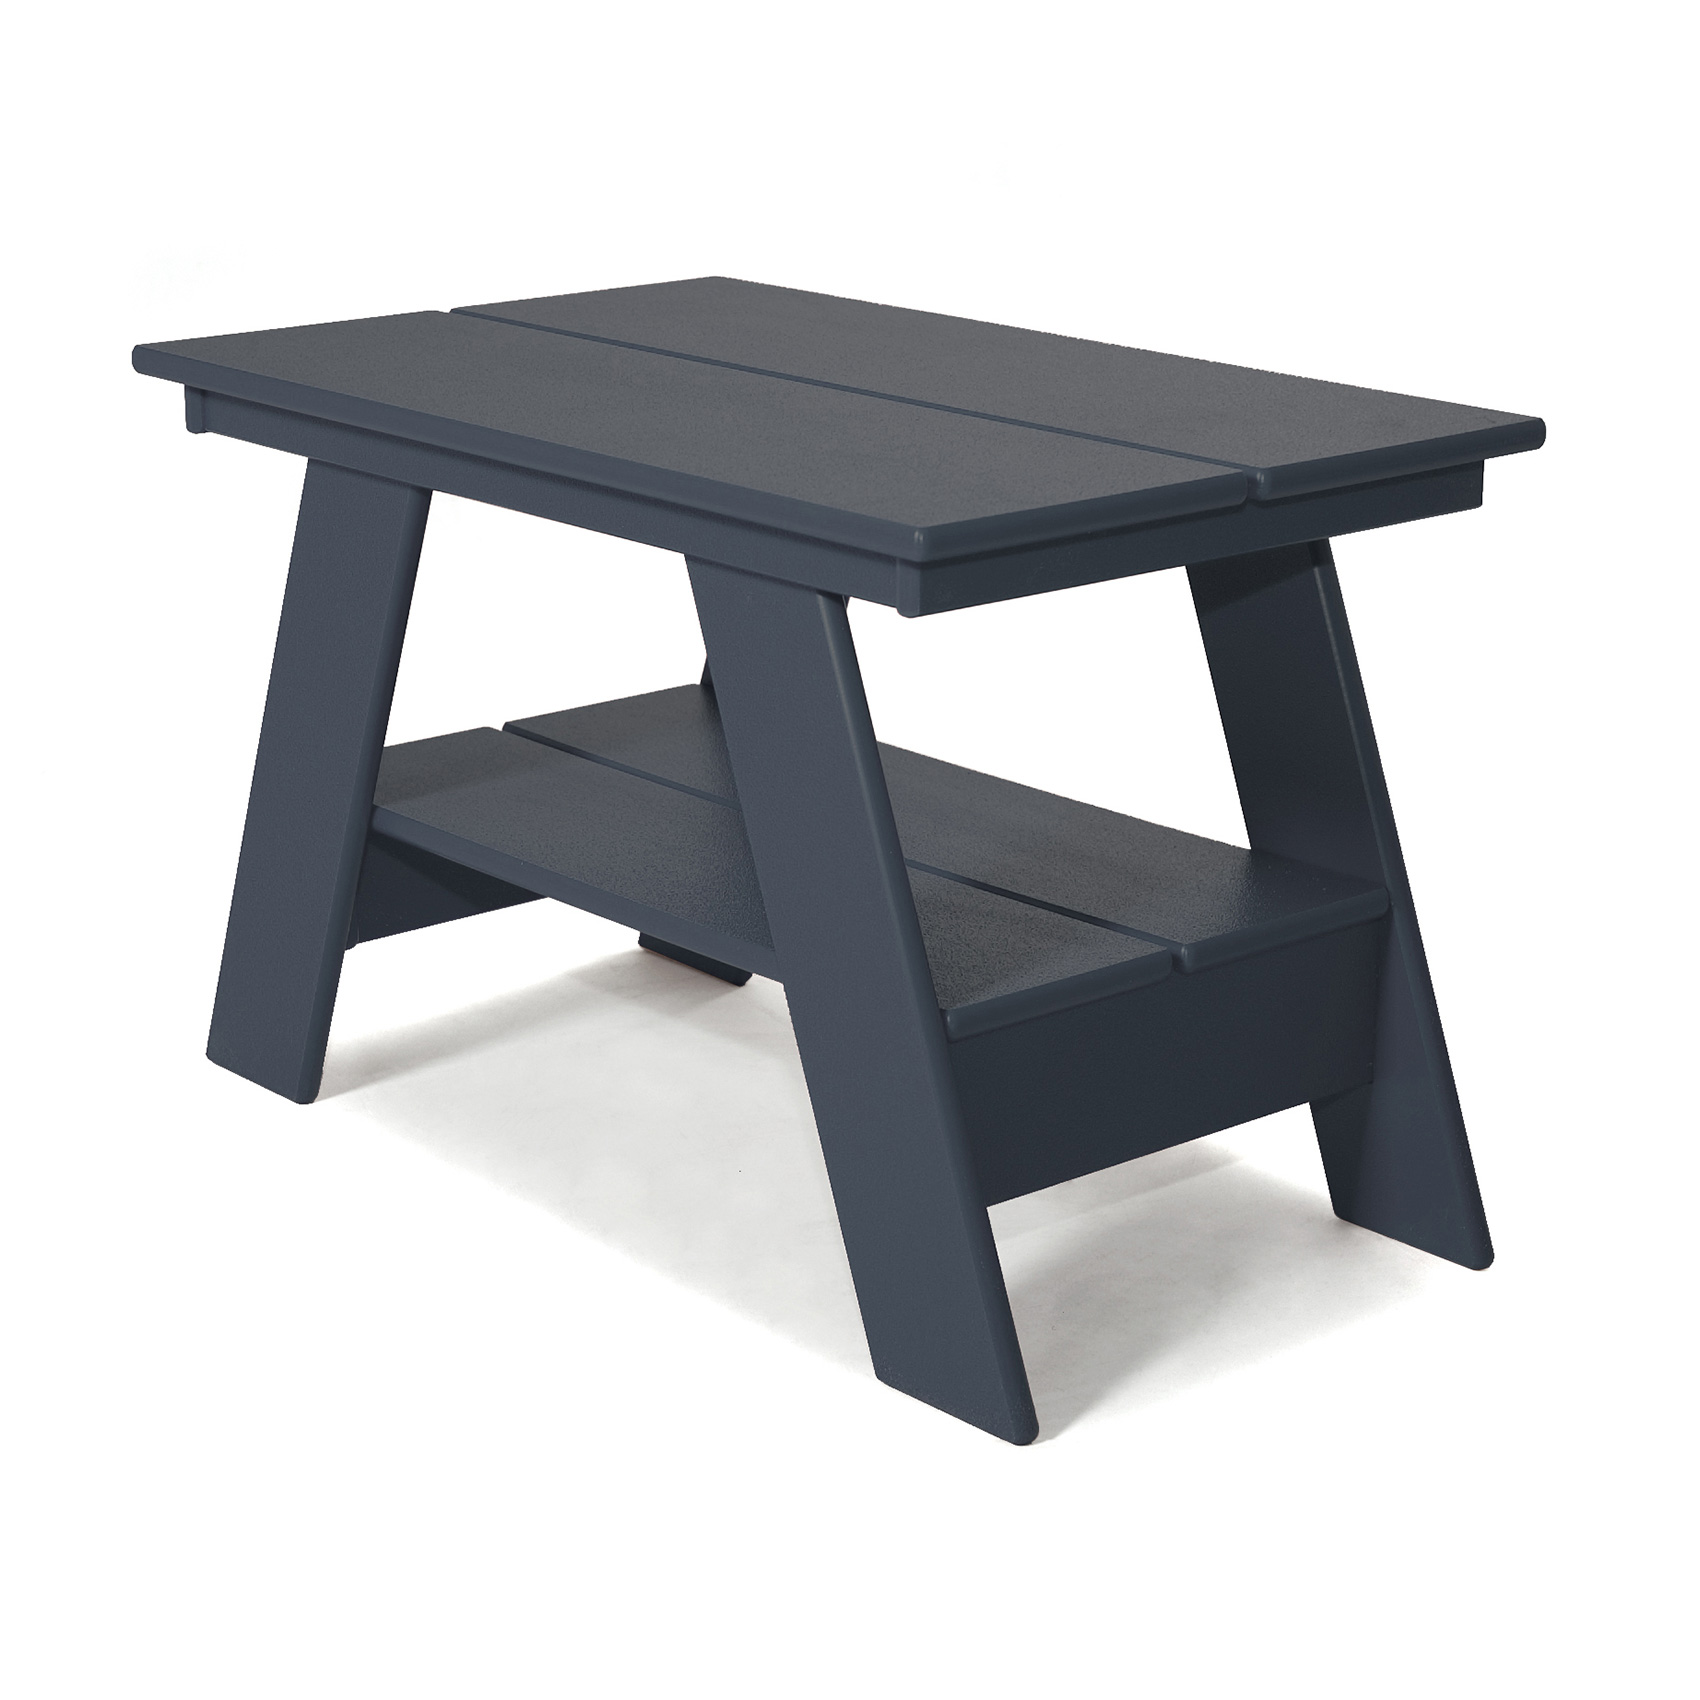 modern outdoor side table adirondack style loll designs grey navy accent vintage round wood coffee heavy duty garden furniture covers entryway bench concrete dinner rectangle